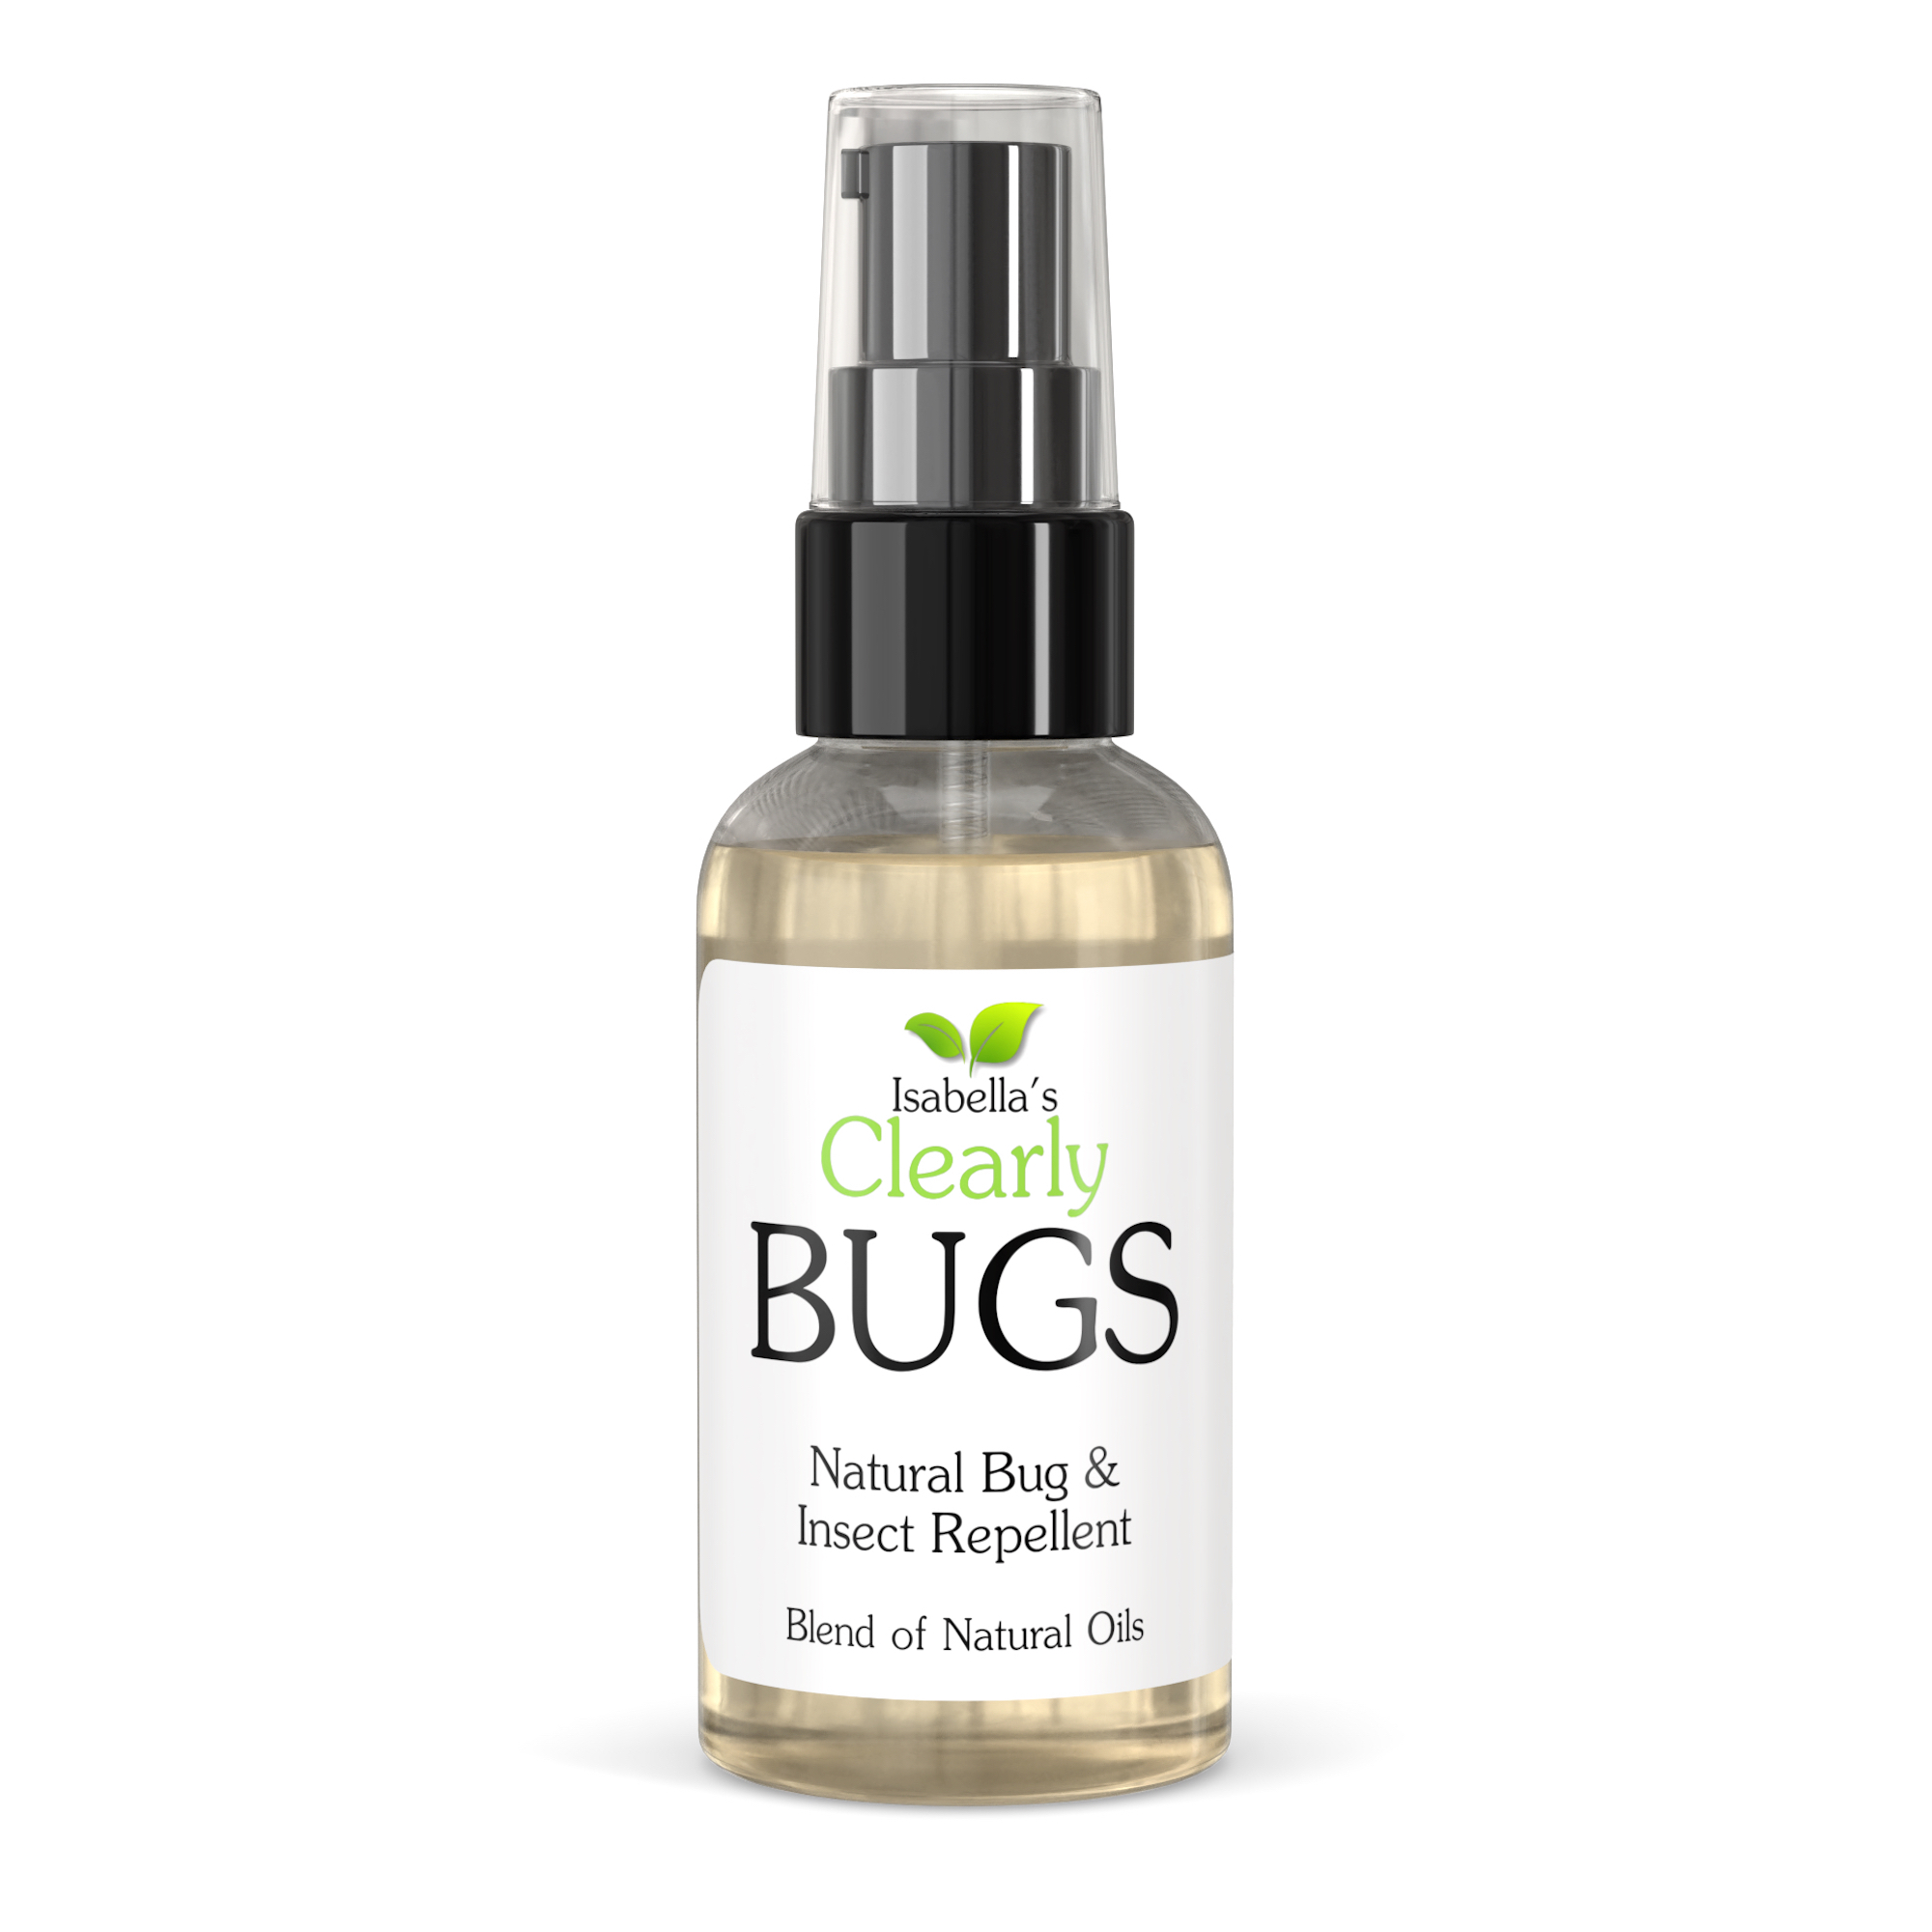 Clearly BUGS, All Natural Bug and Insect Repellent